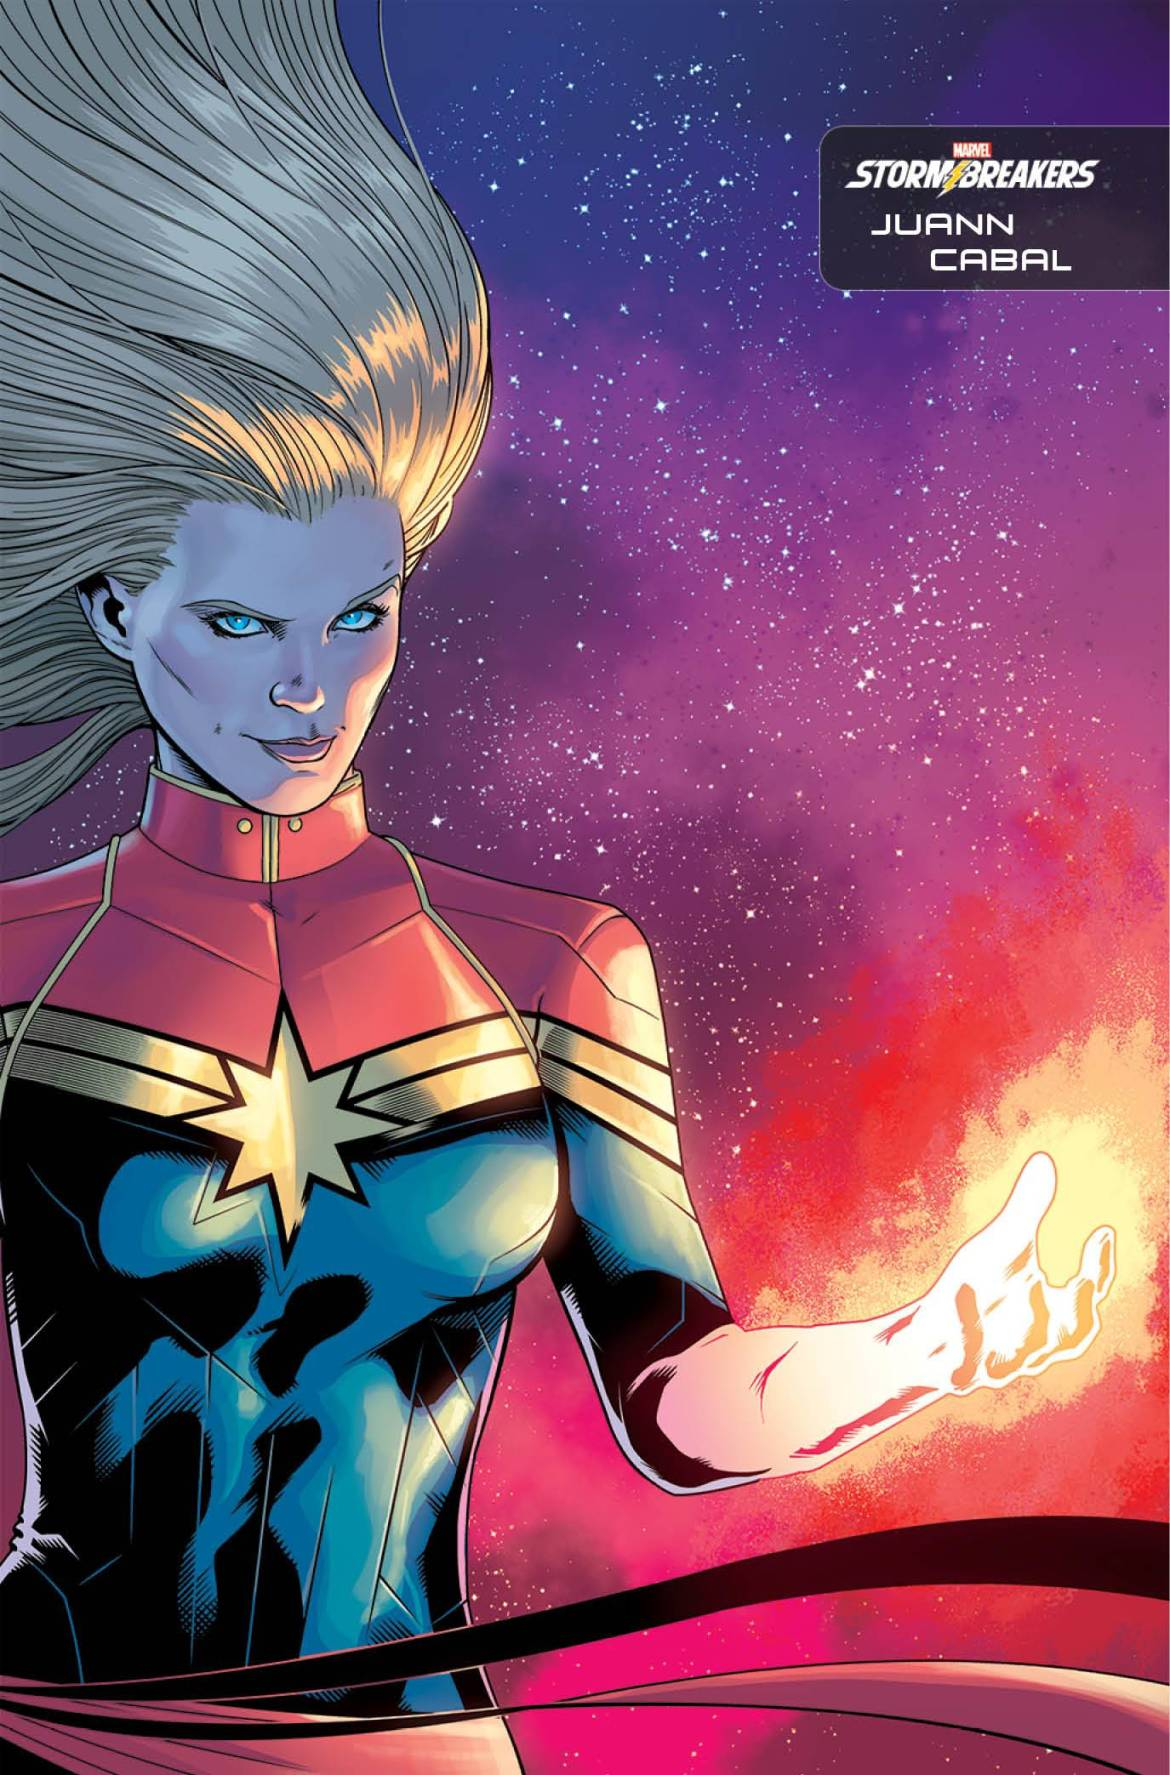 STL175695 ComicList: Marvel Comics New Releases for 01/27/2021